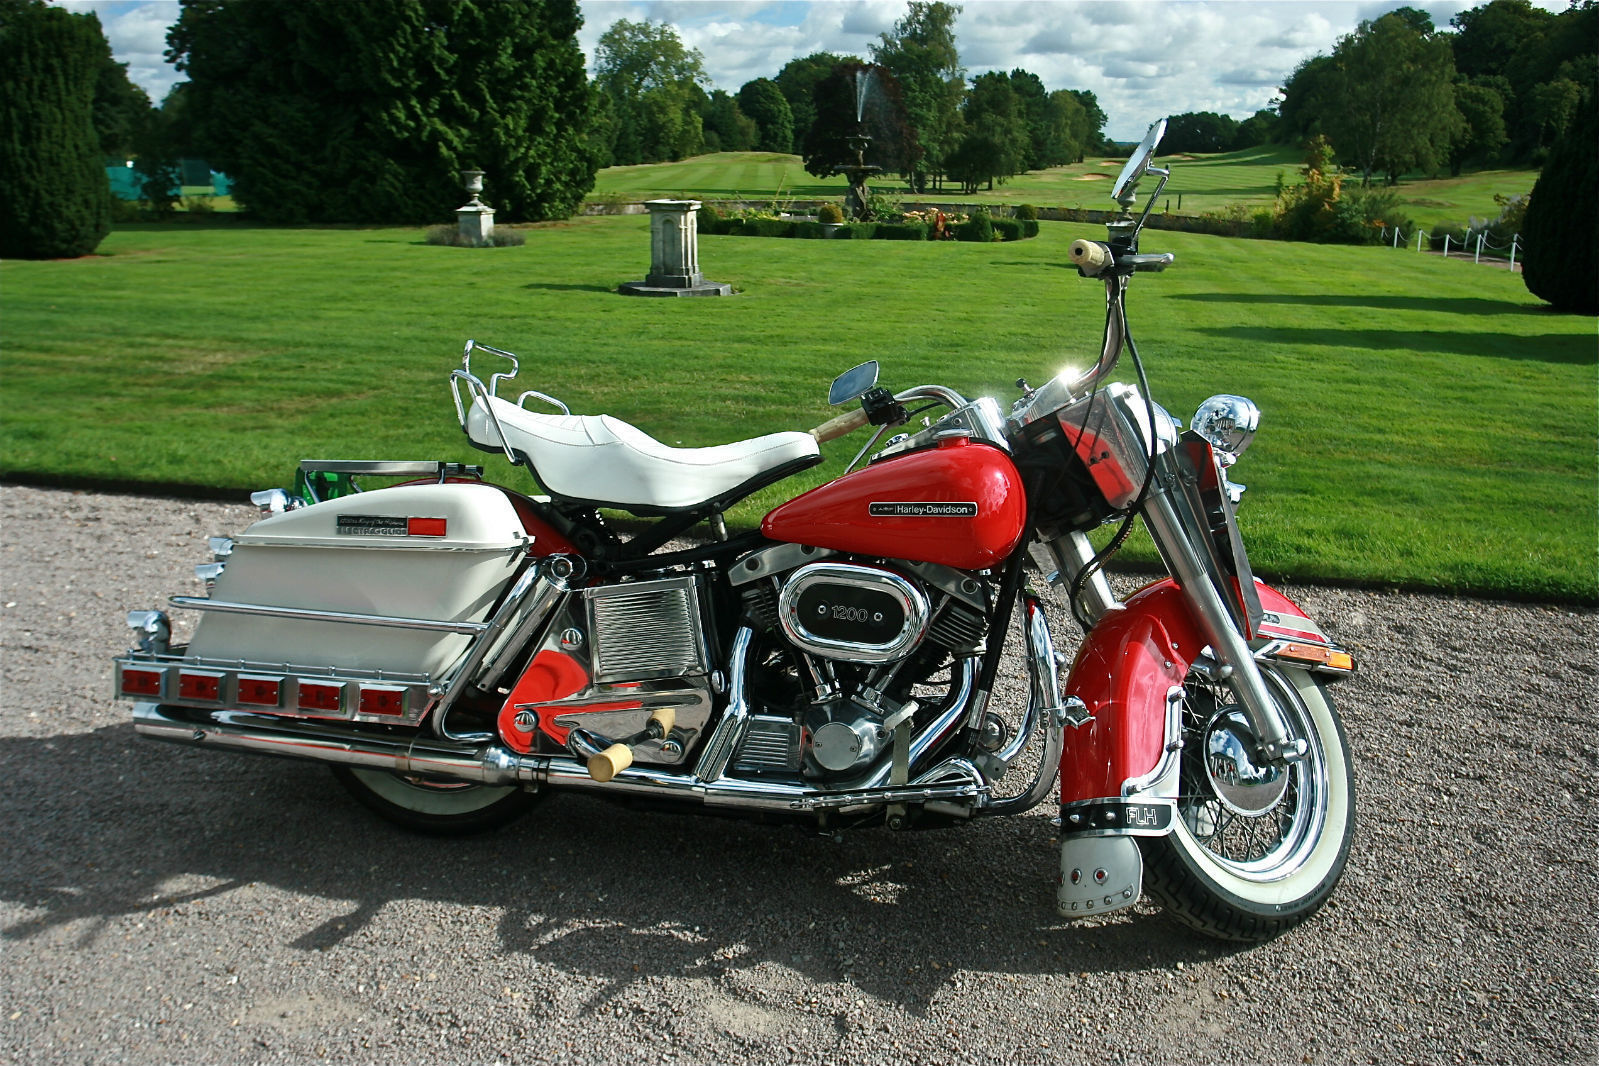 1977 harley davidson shovelhead electra glide. Black Bedroom Furniture Sets. Home Design Ideas